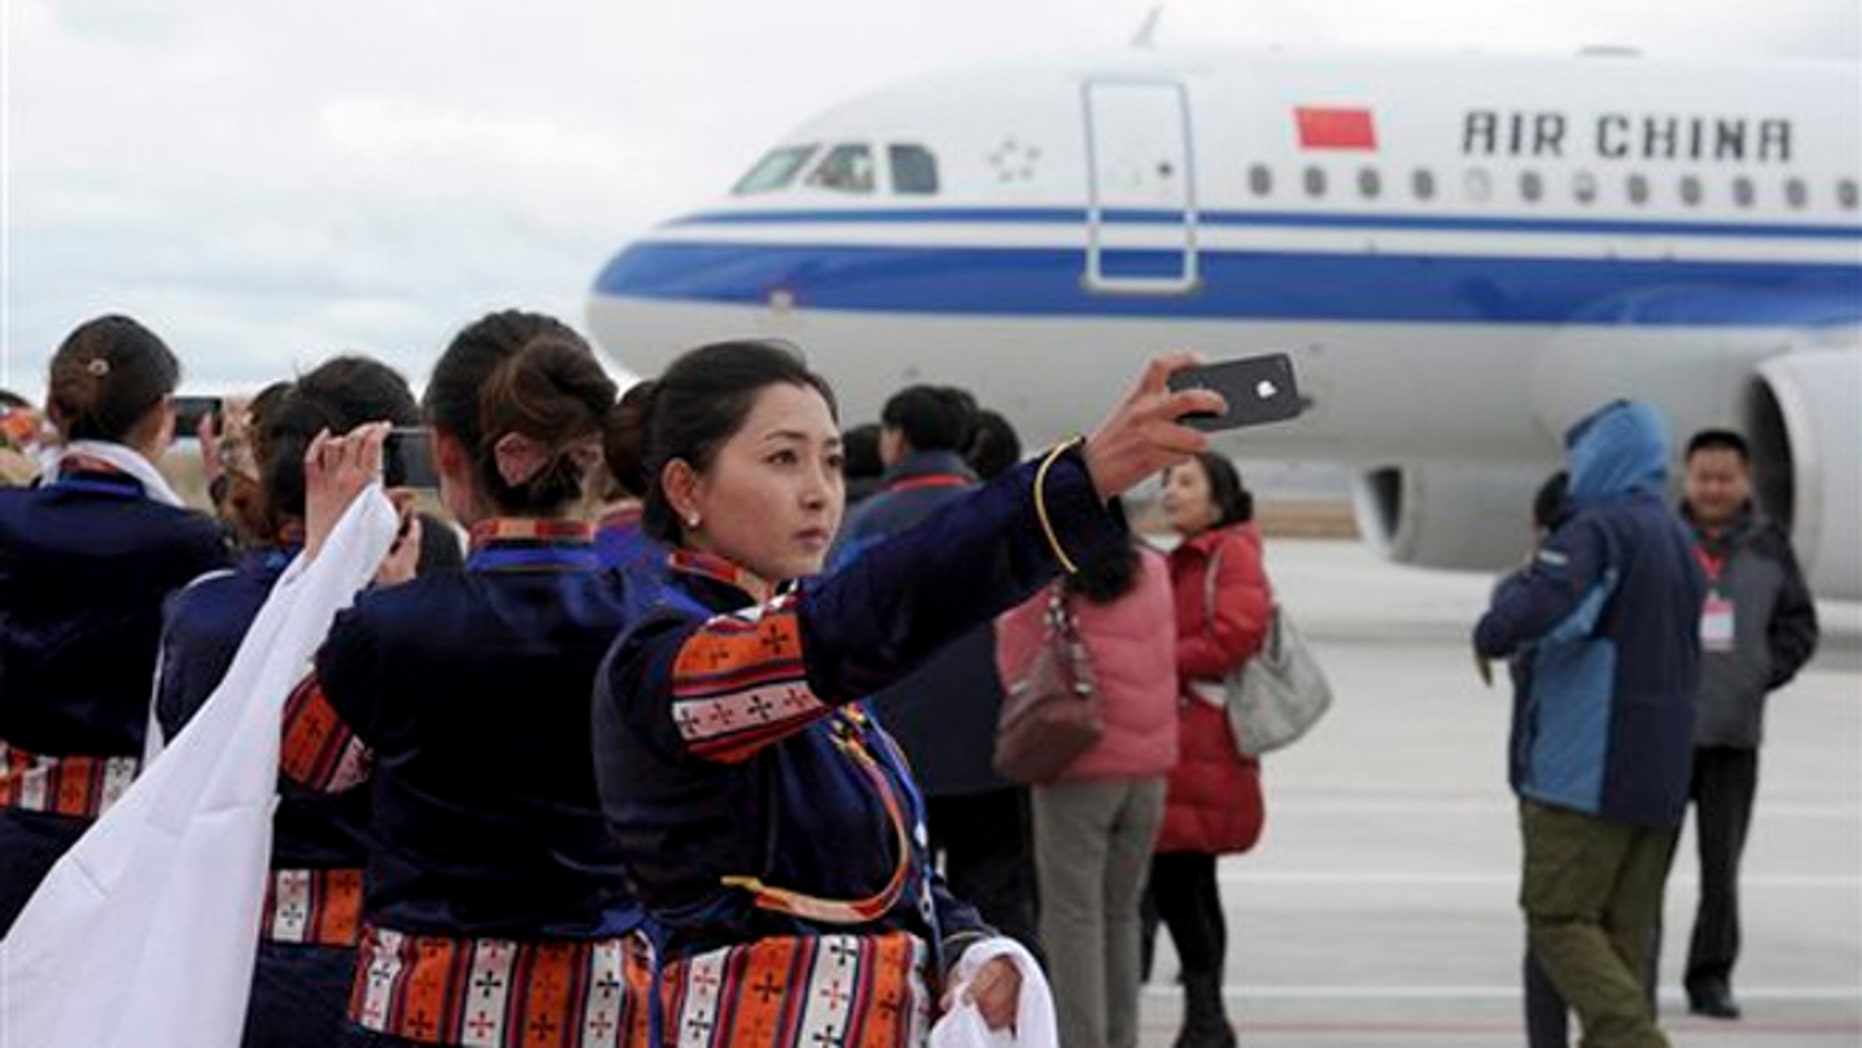 A Tibetan woman uses her cellphone to take photos of a flight that touched down at Yading airport, the world's highest-altitude civilian airport at 14,471 feet above the sea level.